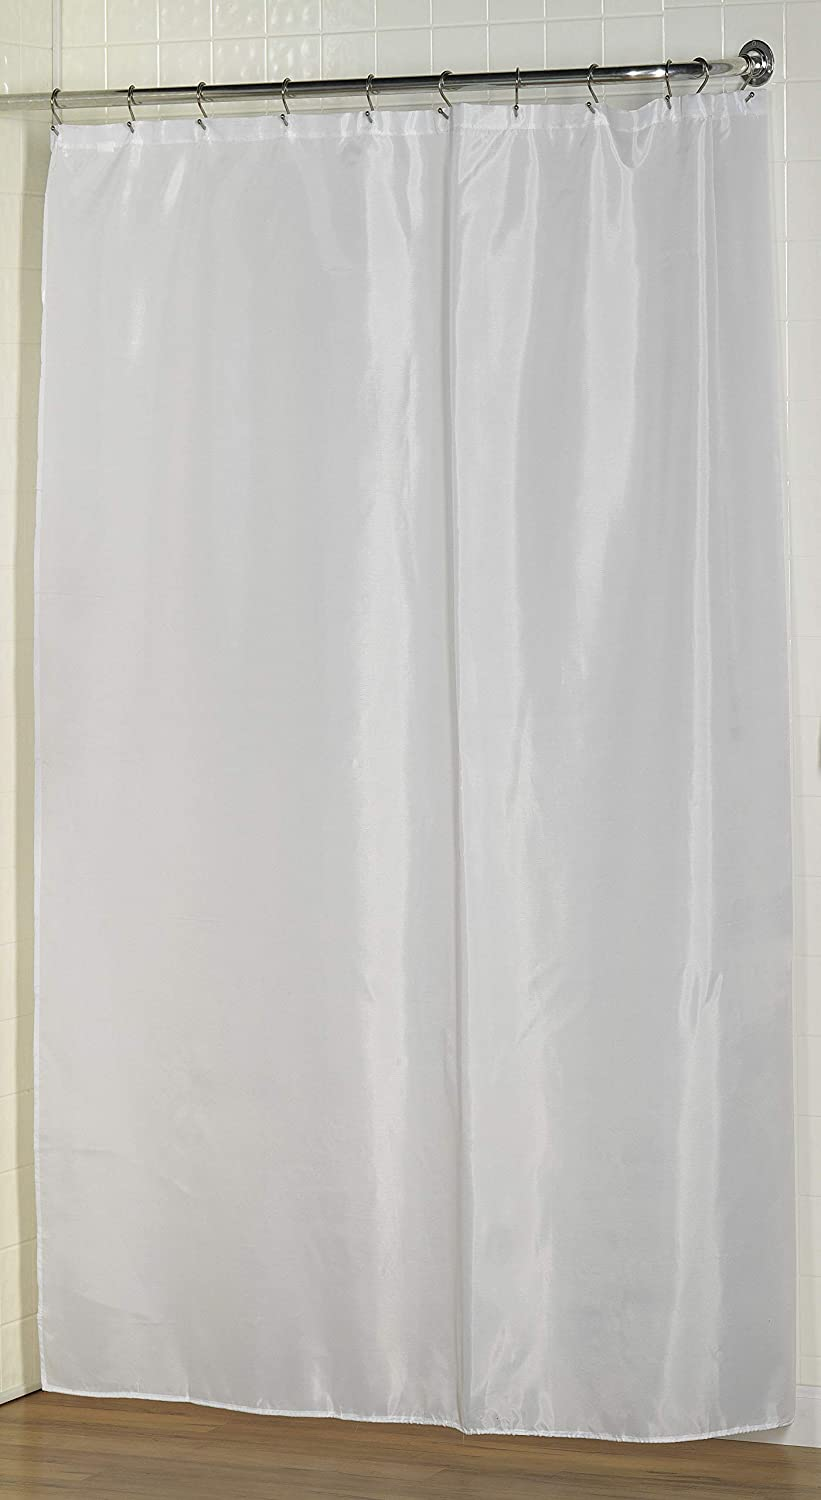 BetterBath Extra Long Water Repellant Shower Curtain Indefinitely Line Cash special price Fabric